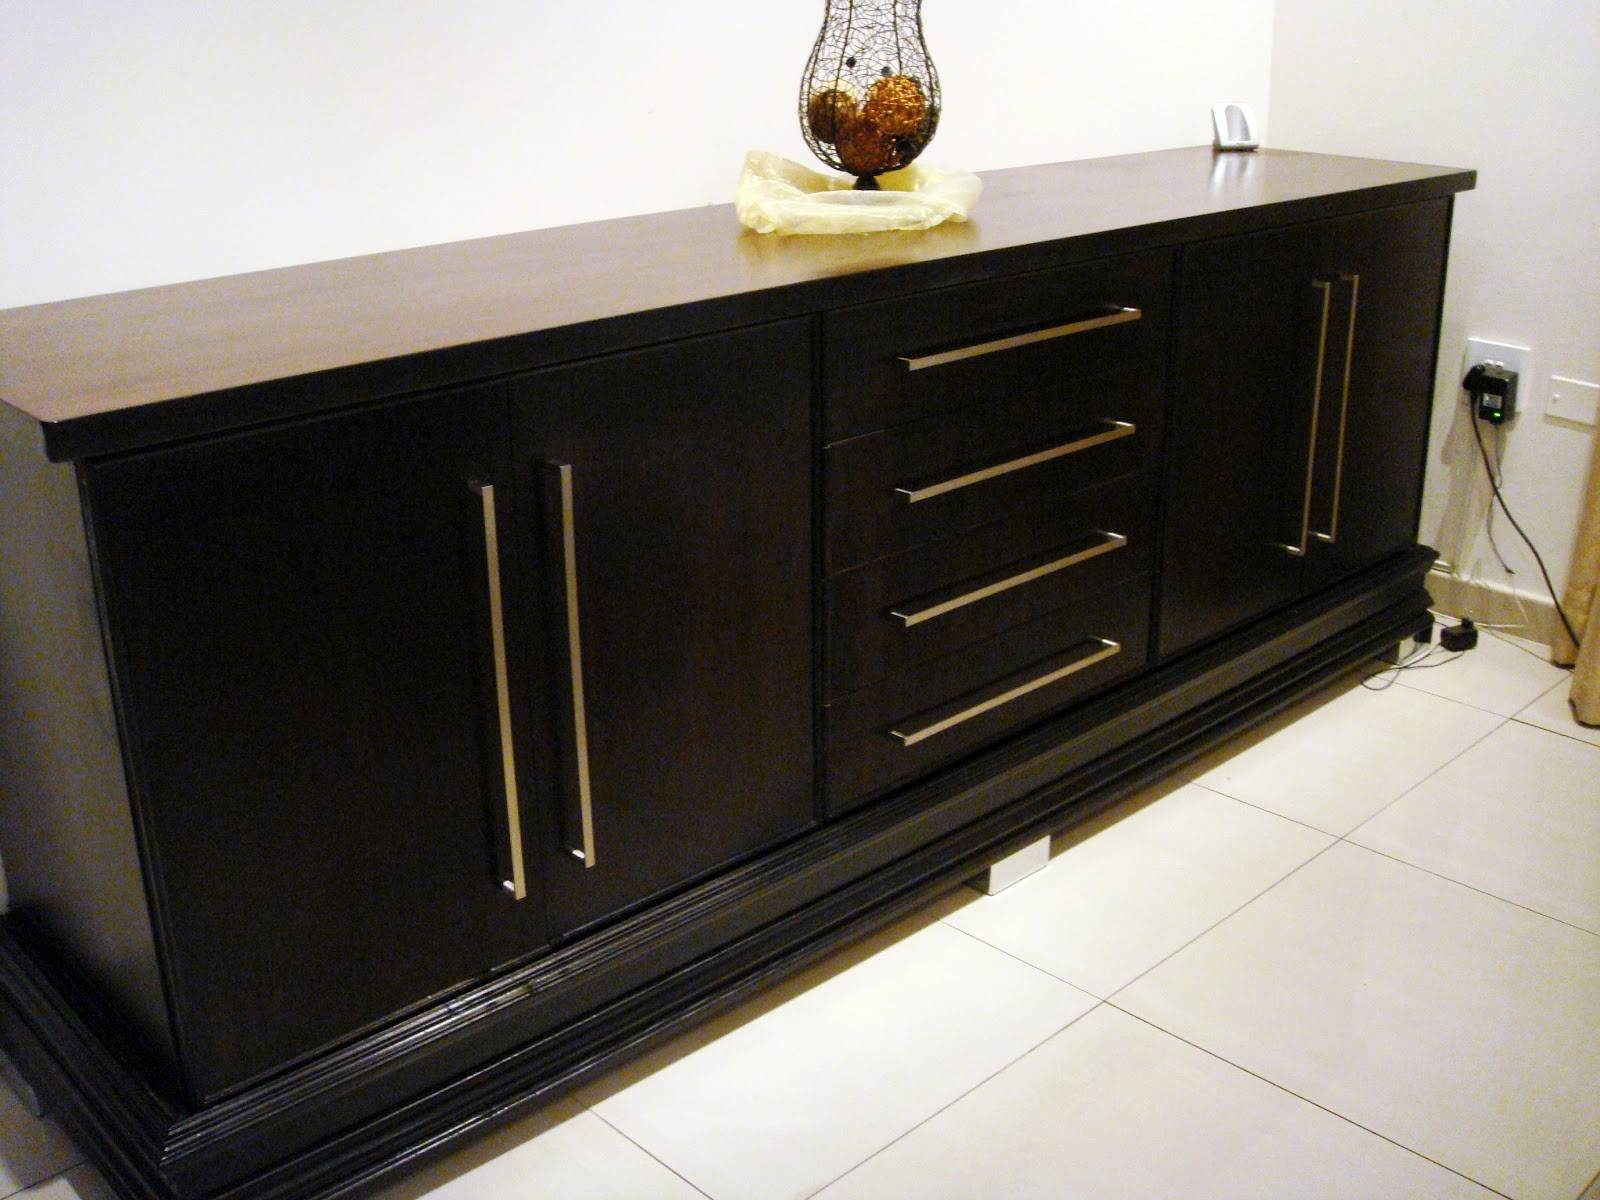 Dining Room Bar Sideboard | Latest Home Decor And Design In Black Dining Room Sideboards (View 14 of 15)